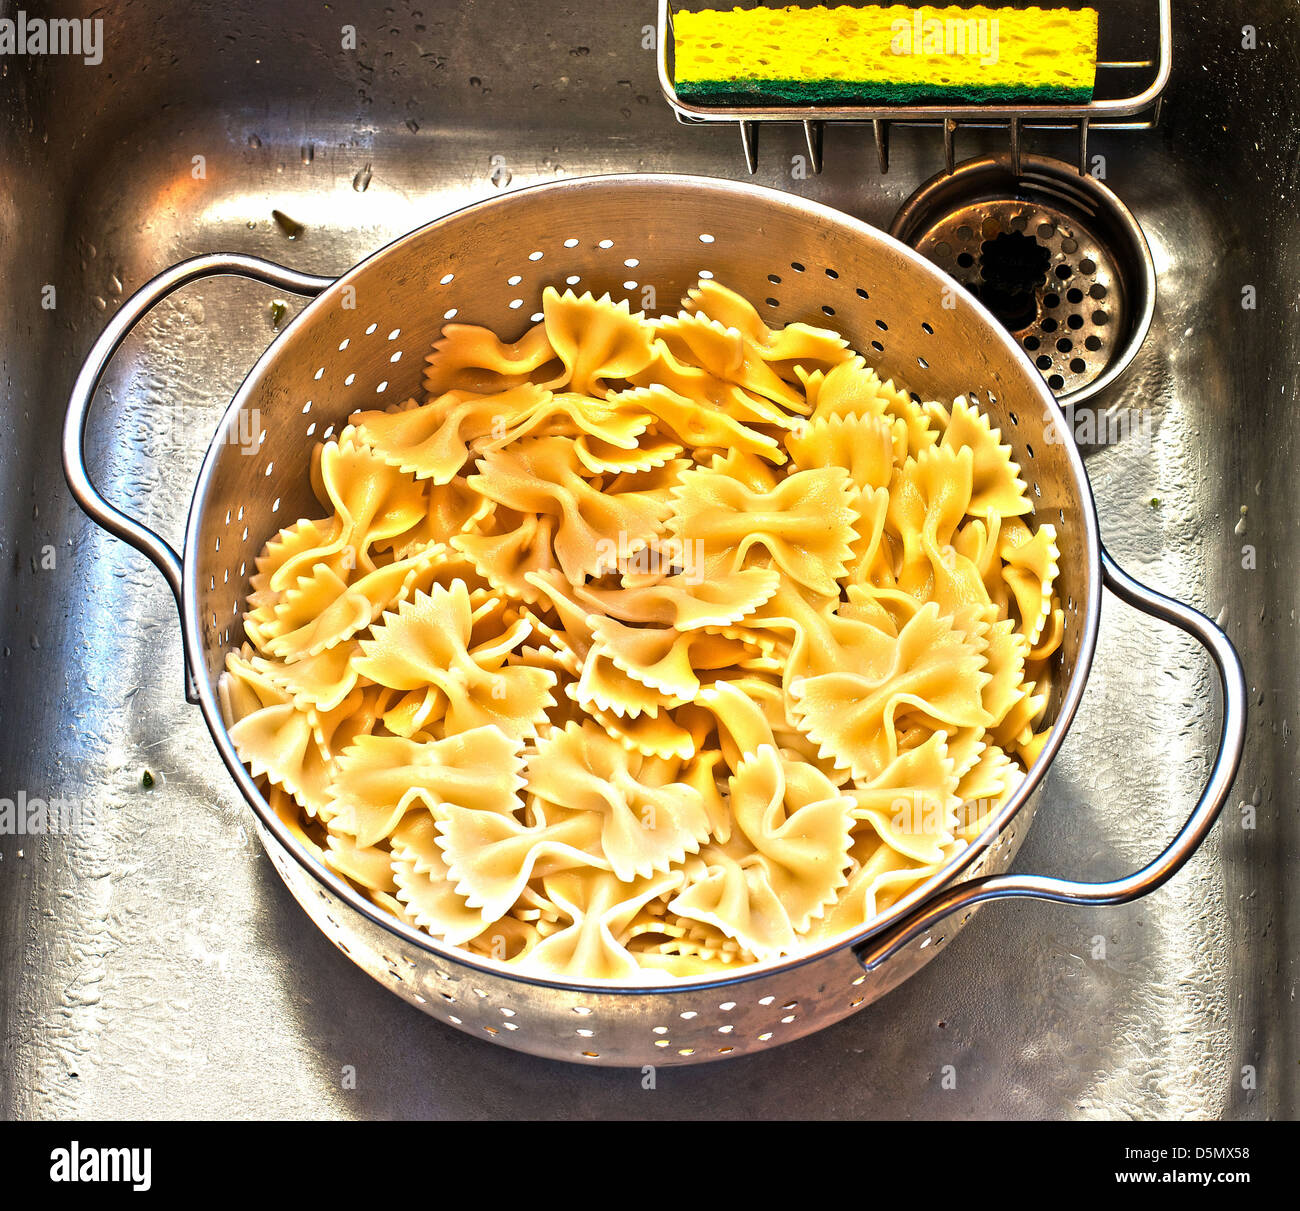 Freshly boiled Farfalle, or bow tie, pasta draining in colander in kitchen sink with bright yellow sponge. - Stock Image